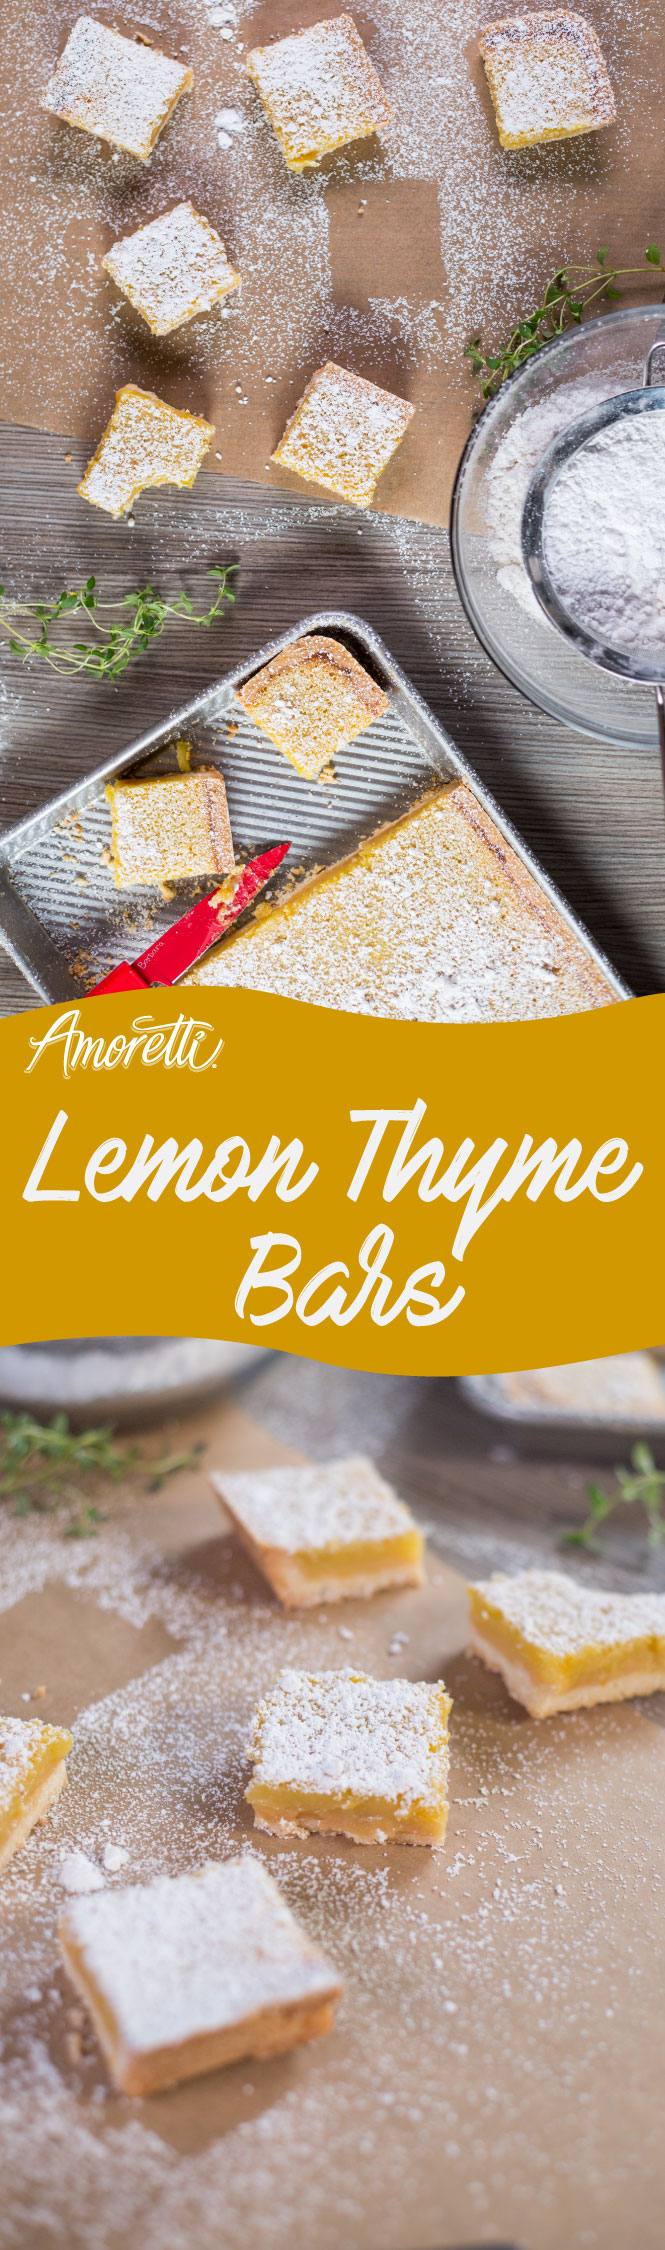 We've updated the classic lemon bar with a pinch of thyme!